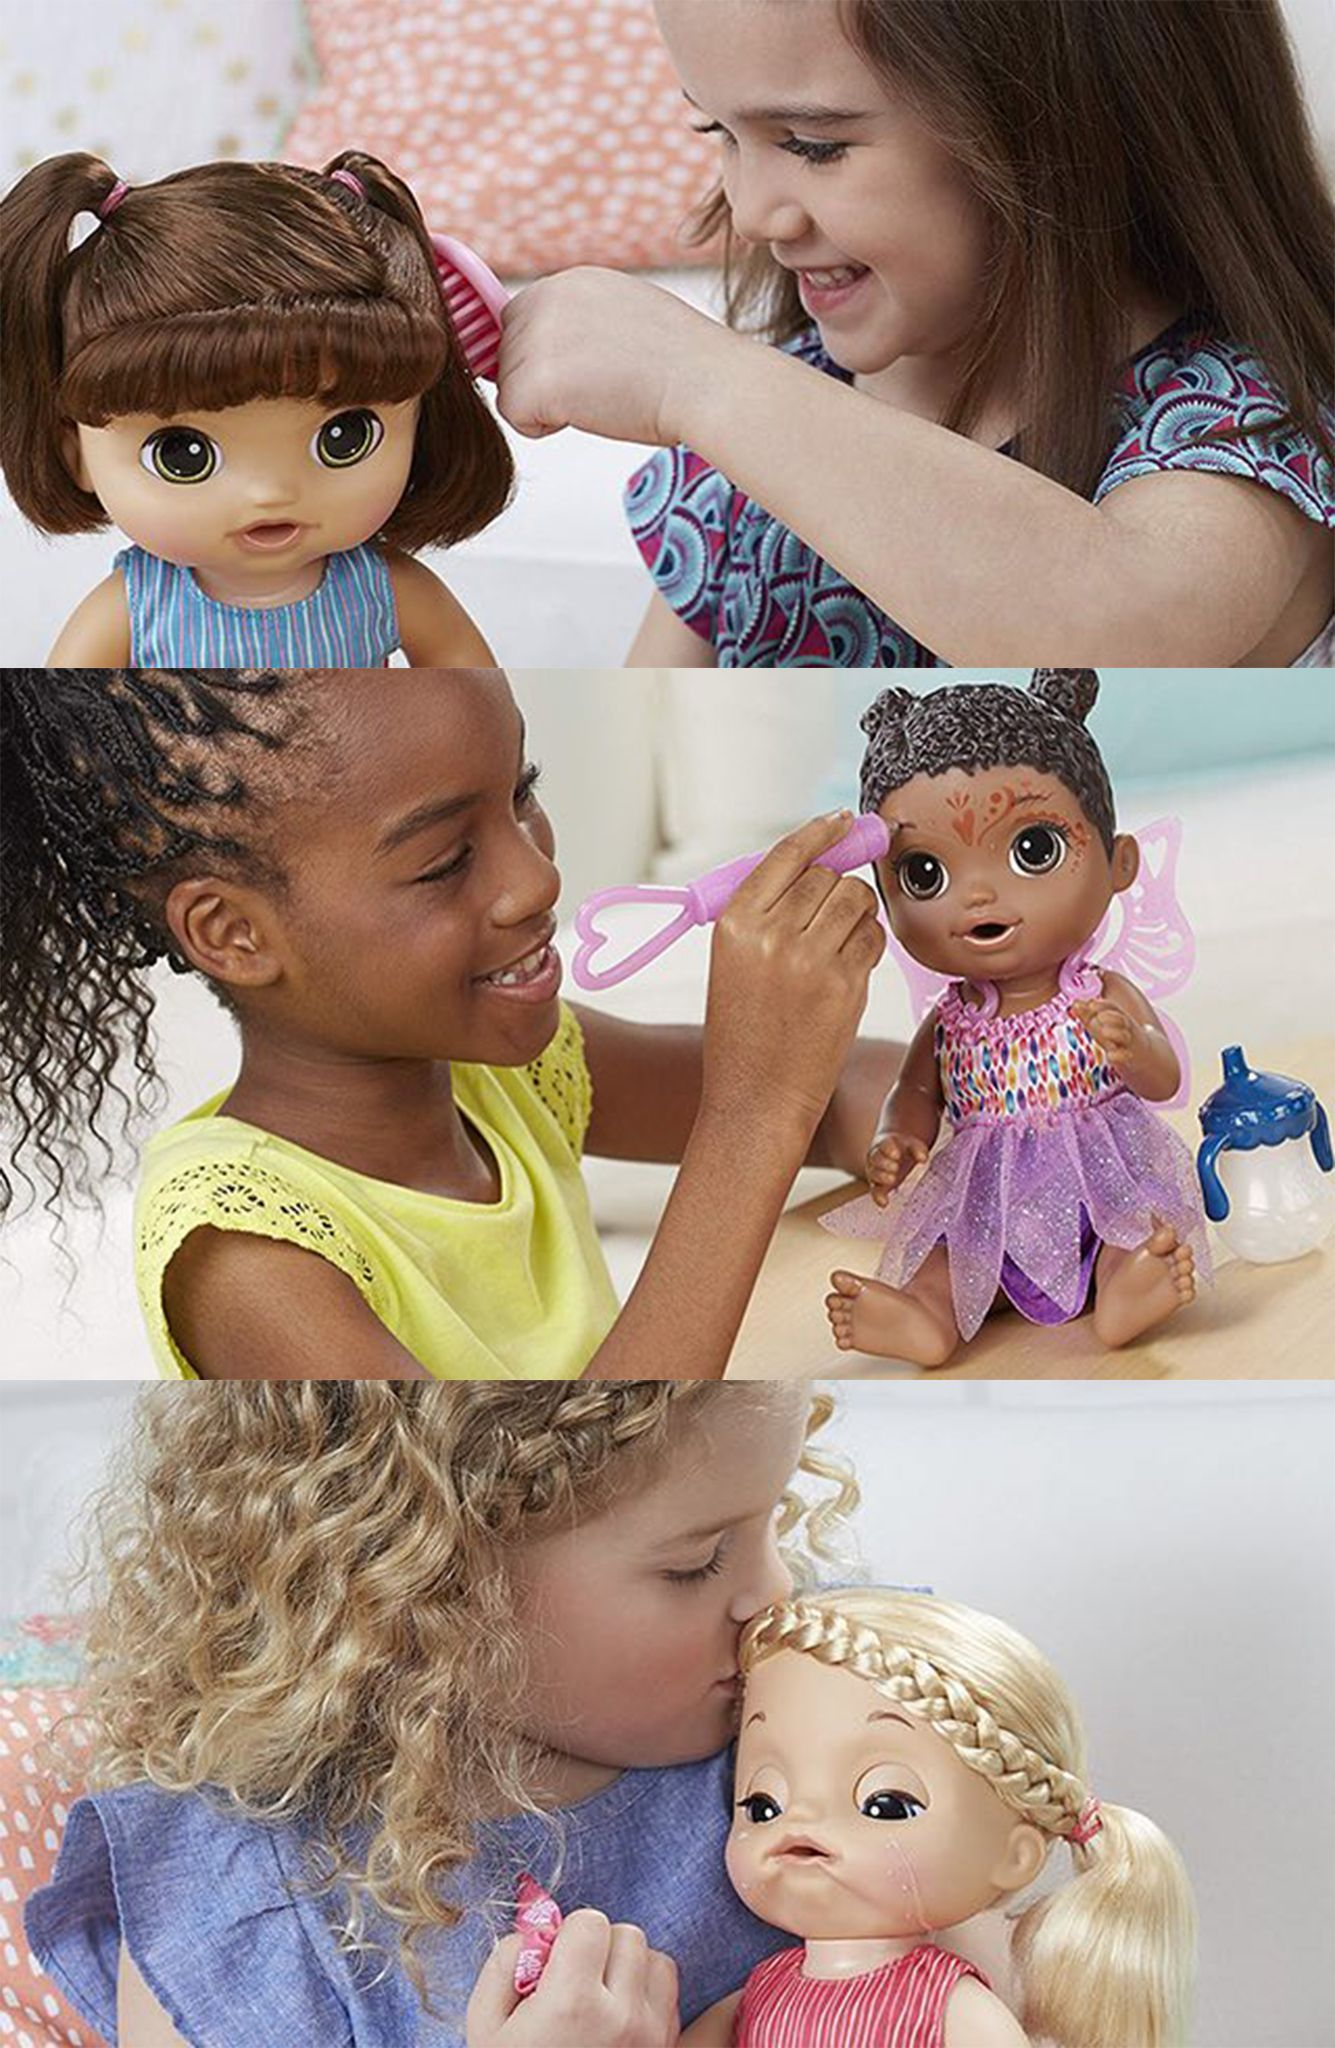 Up to 50 off Baby Alive Dolls and Accessories Today